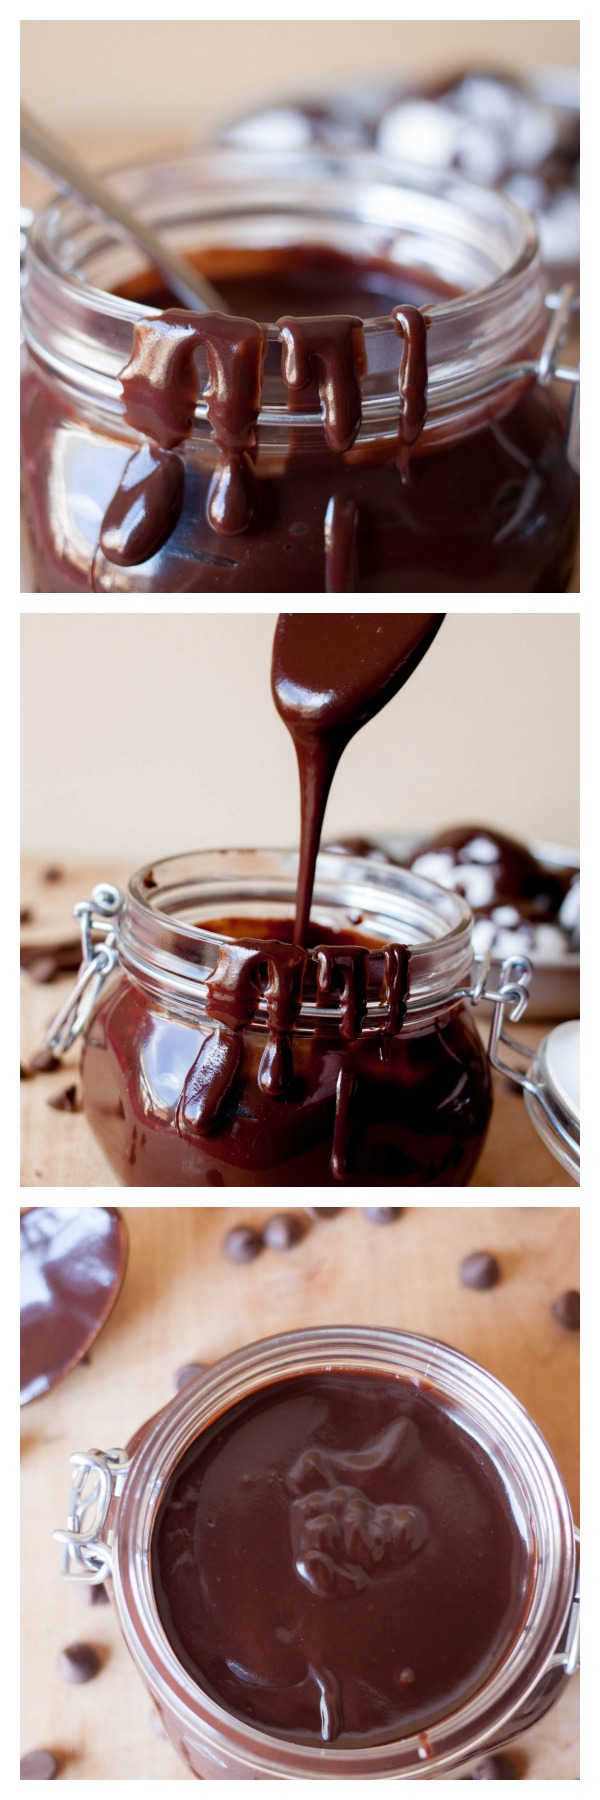 Chocolate Sauce - TGIF - This Grandma is Fun